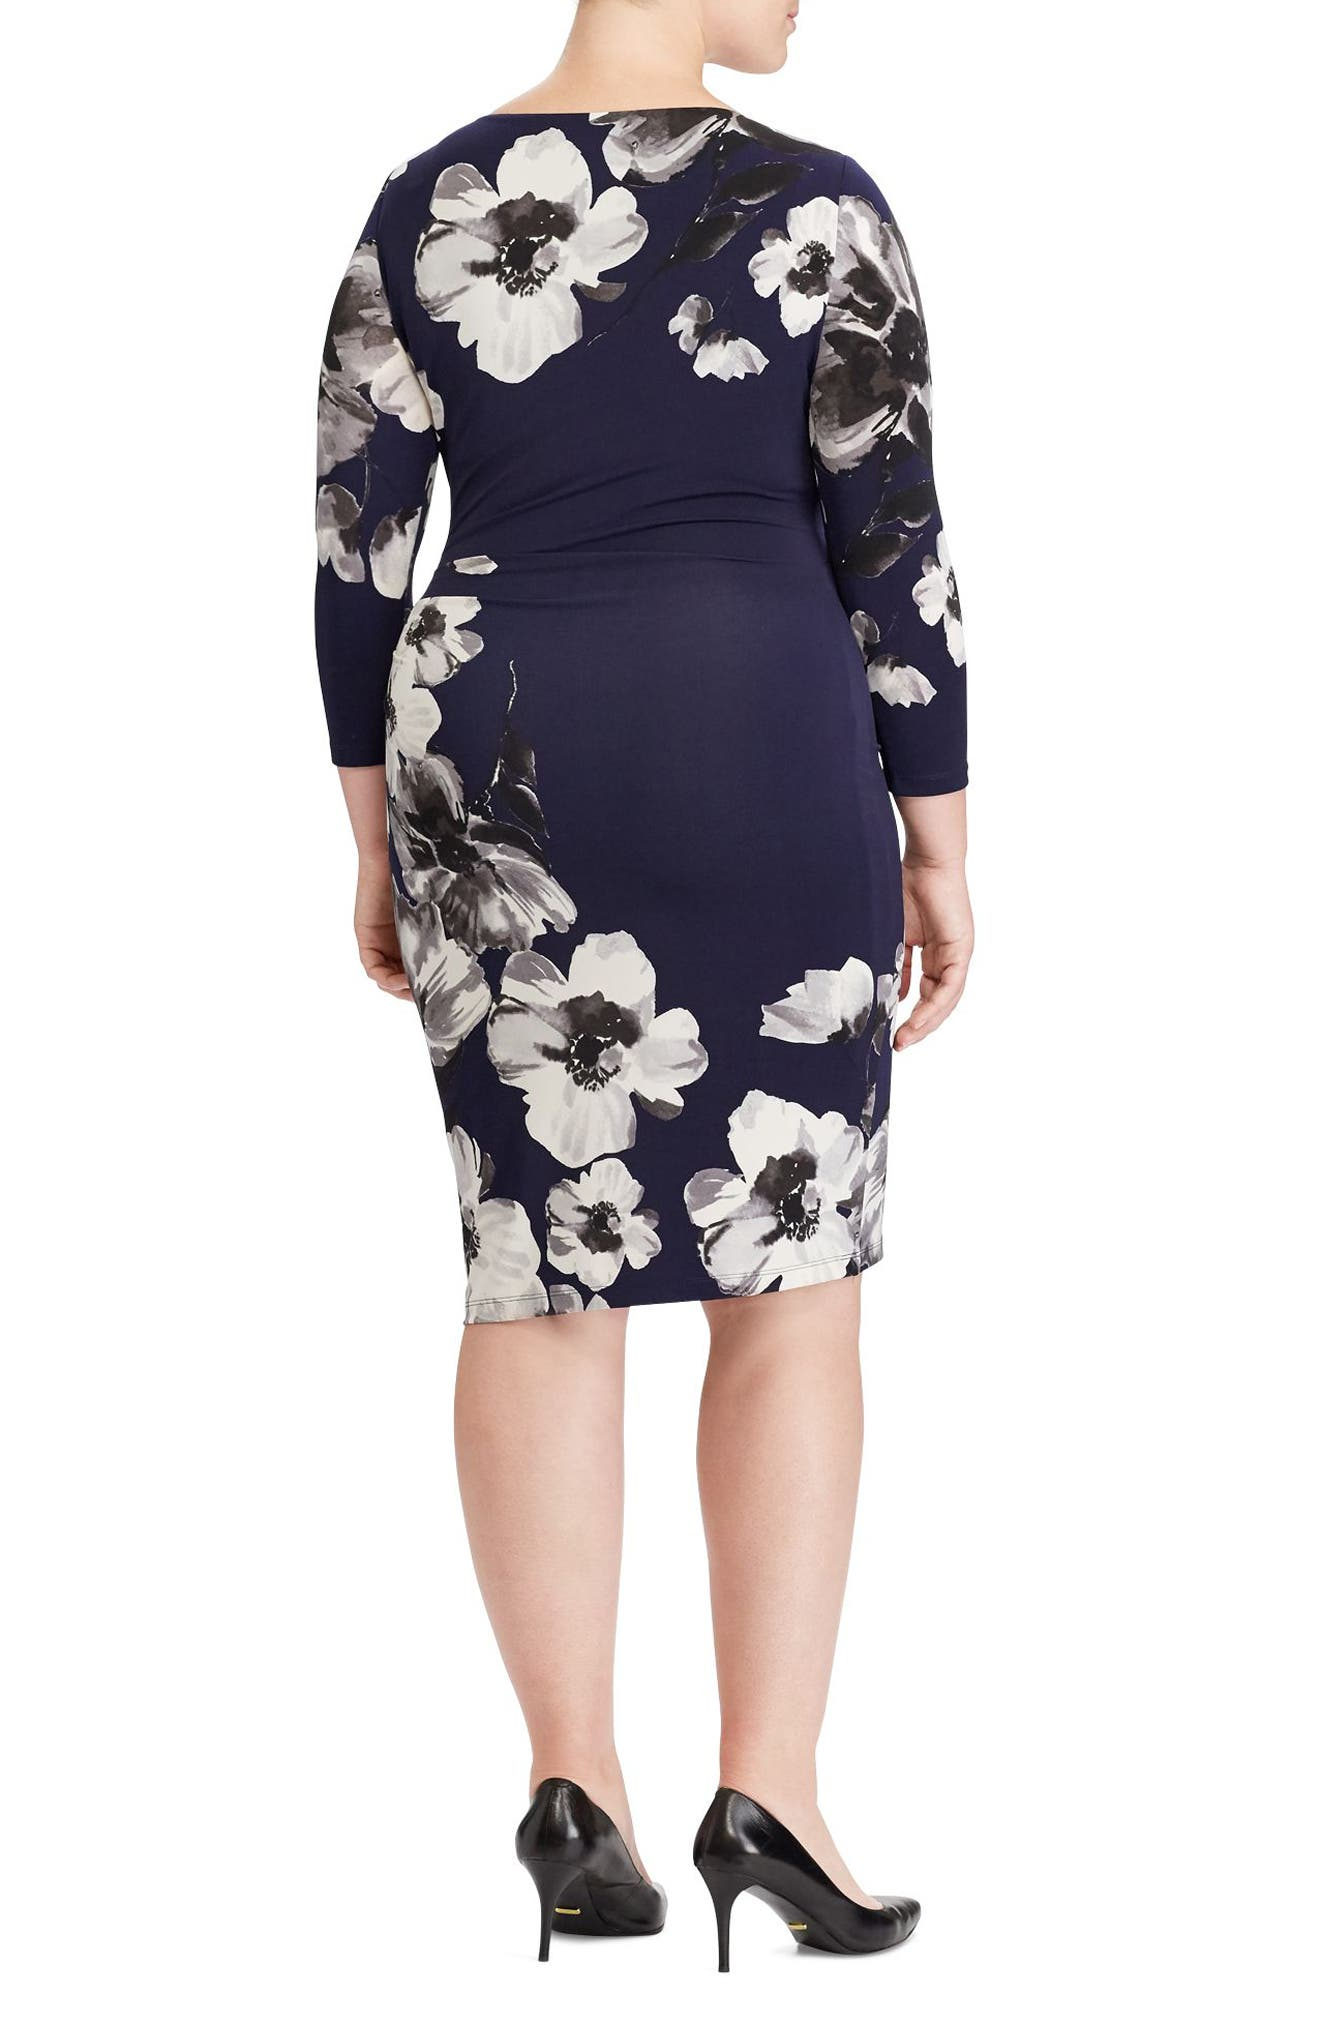 Floral Stretch Jersey Dress,                             Alternate thumbnail 2, color,                             Blackberry/ Slate/ Multi